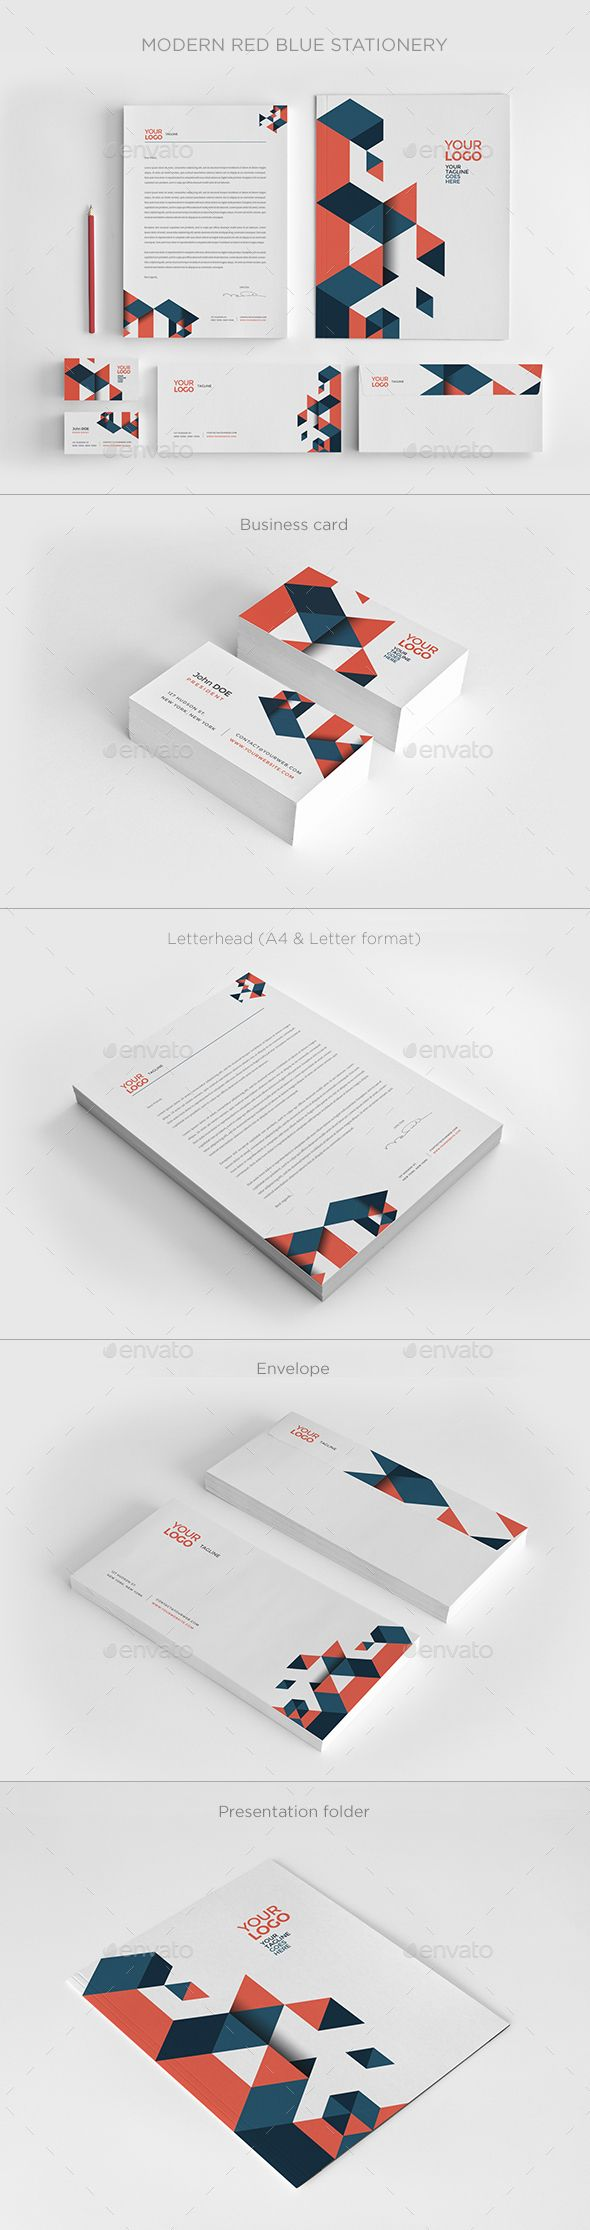 Best 75 Letterhead Images On Pinterest Business Cards Visit